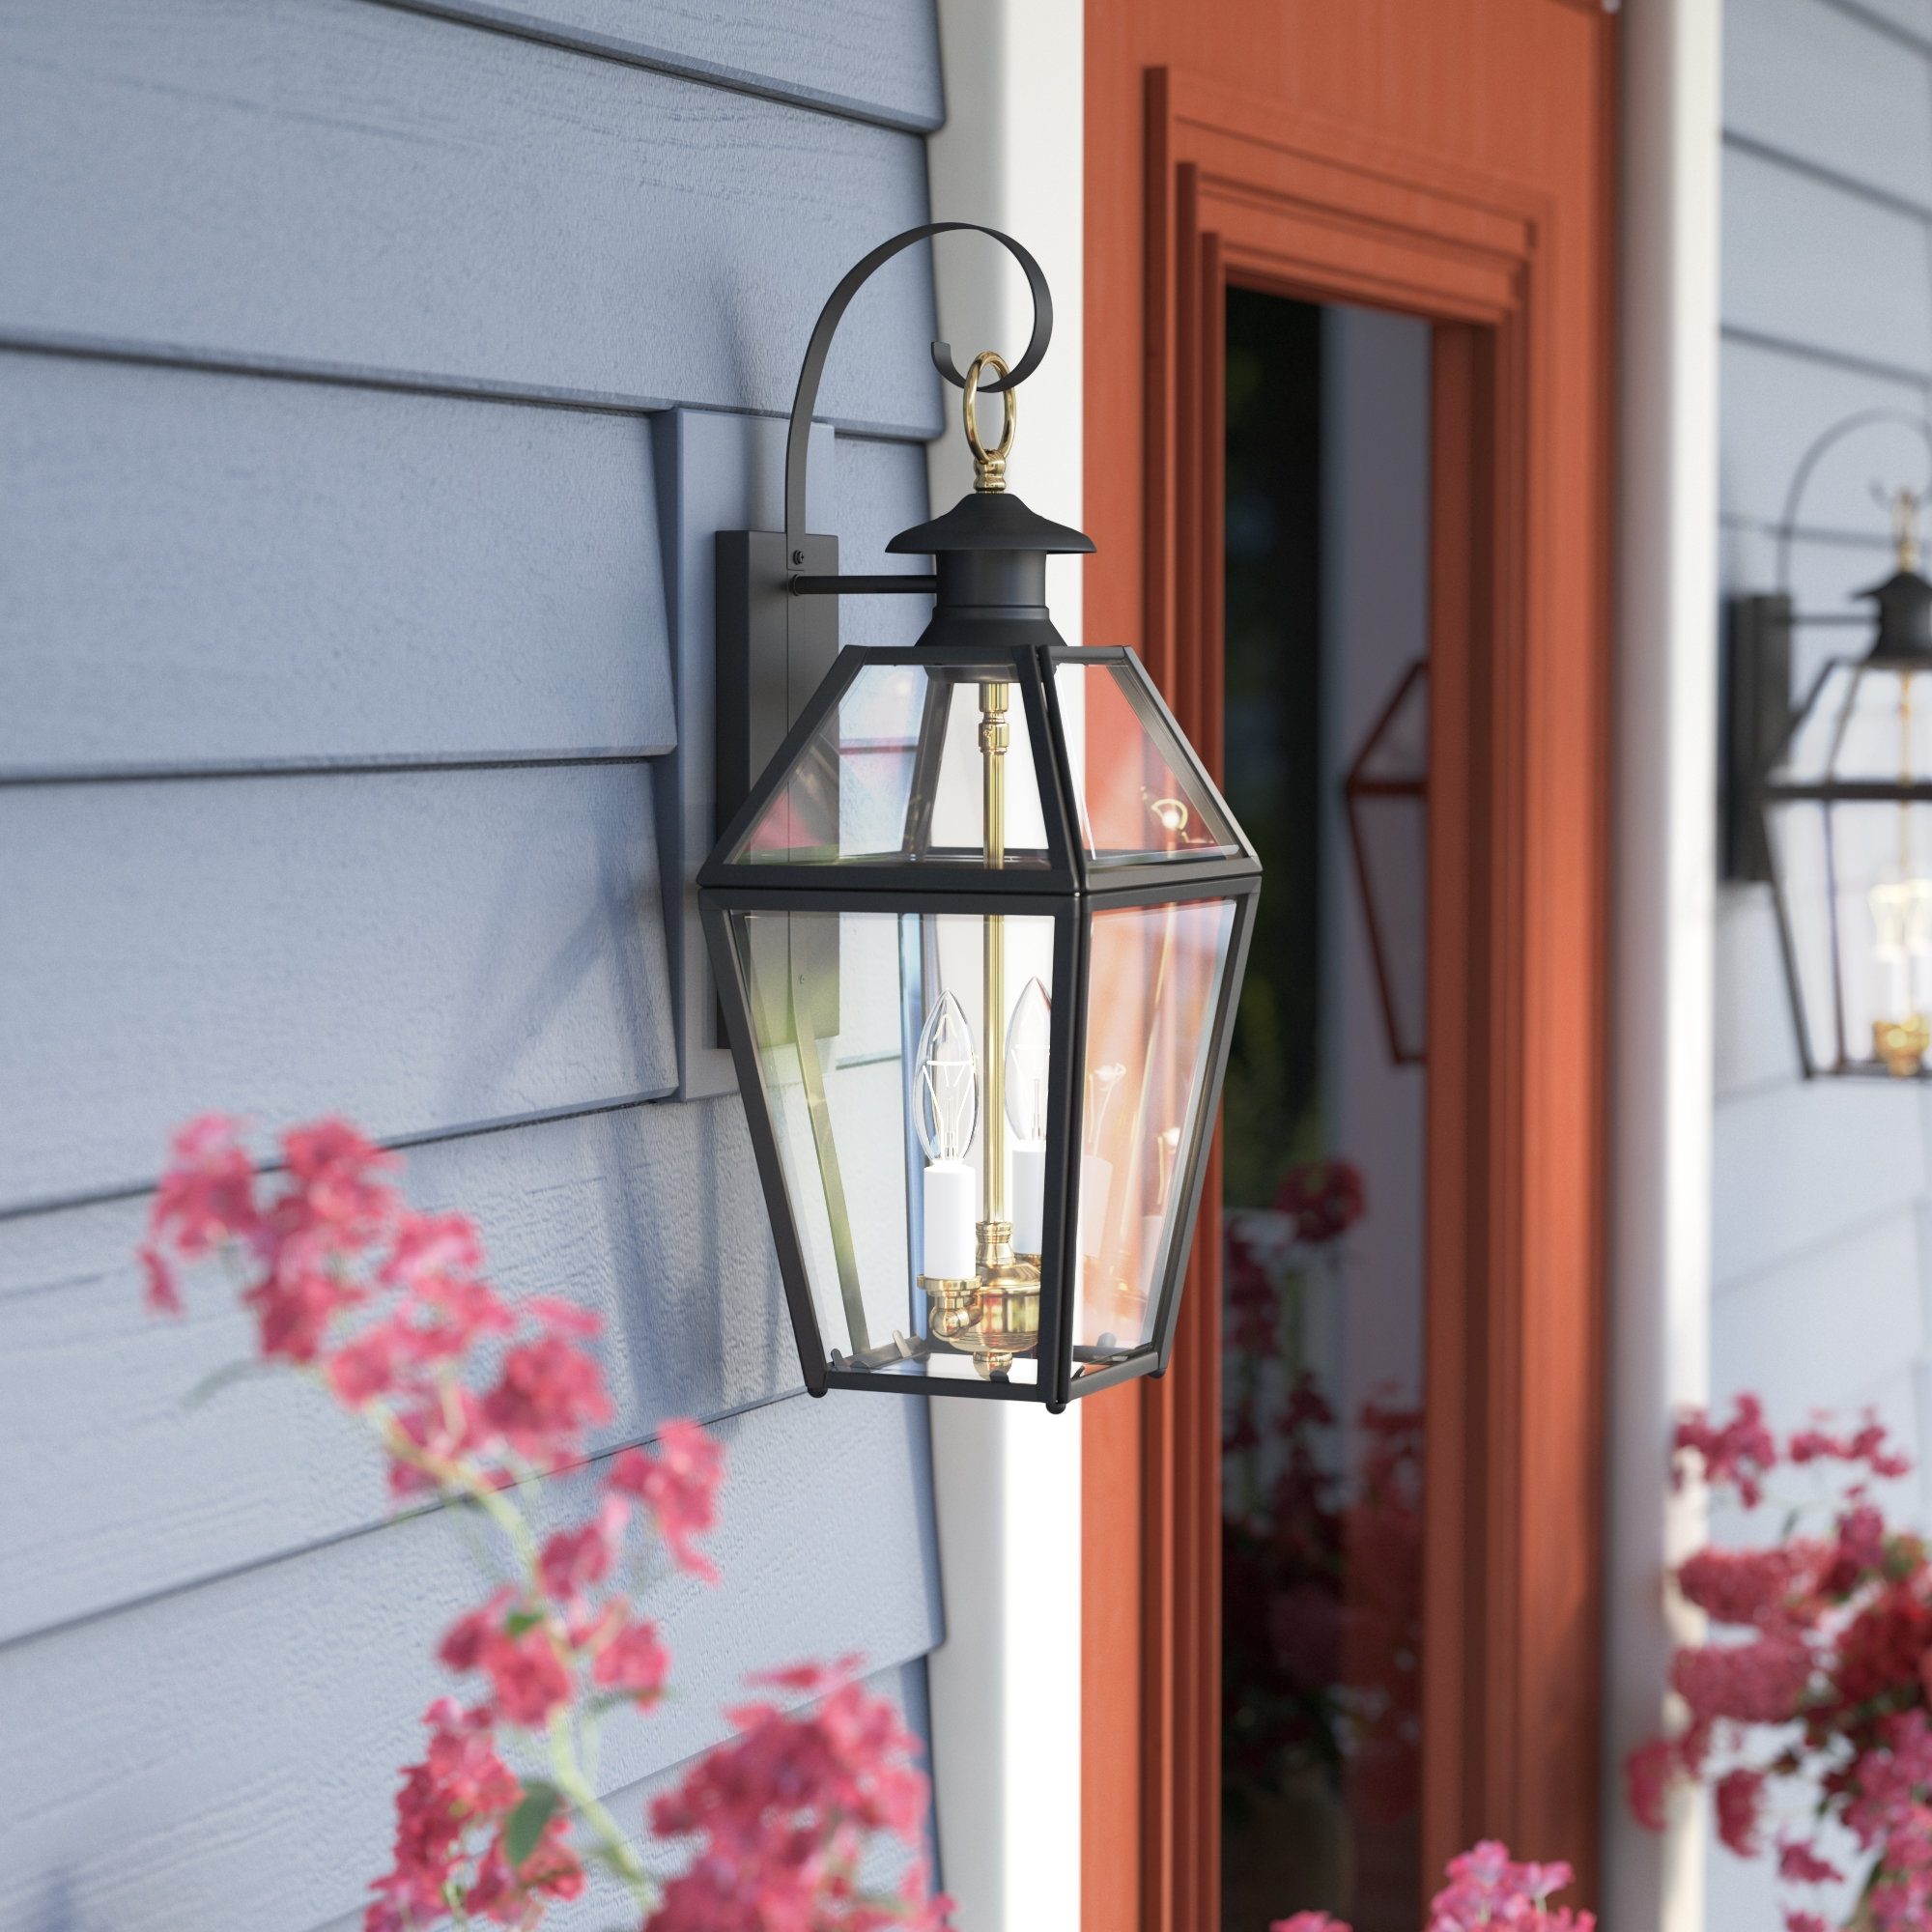 Darby Home Co Alam 2-Light Outdoor Wall Lantern & Reviews | Wayfair throughout Outdoor Oversized Lanterns (Image 4 of 20)